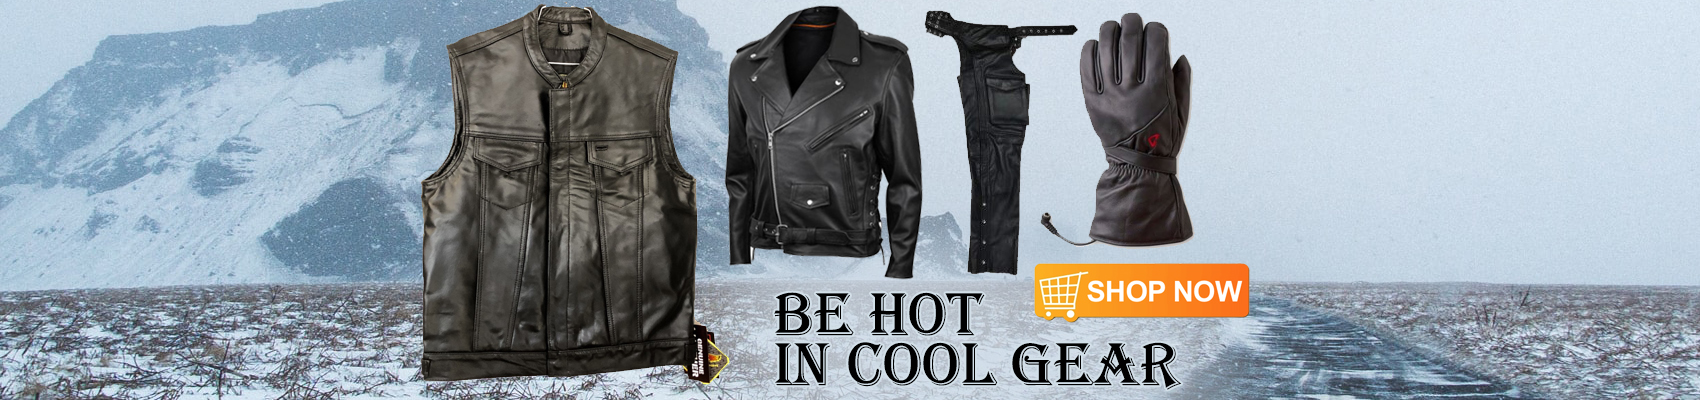 Cold weather motorcycle riding gear for bikers